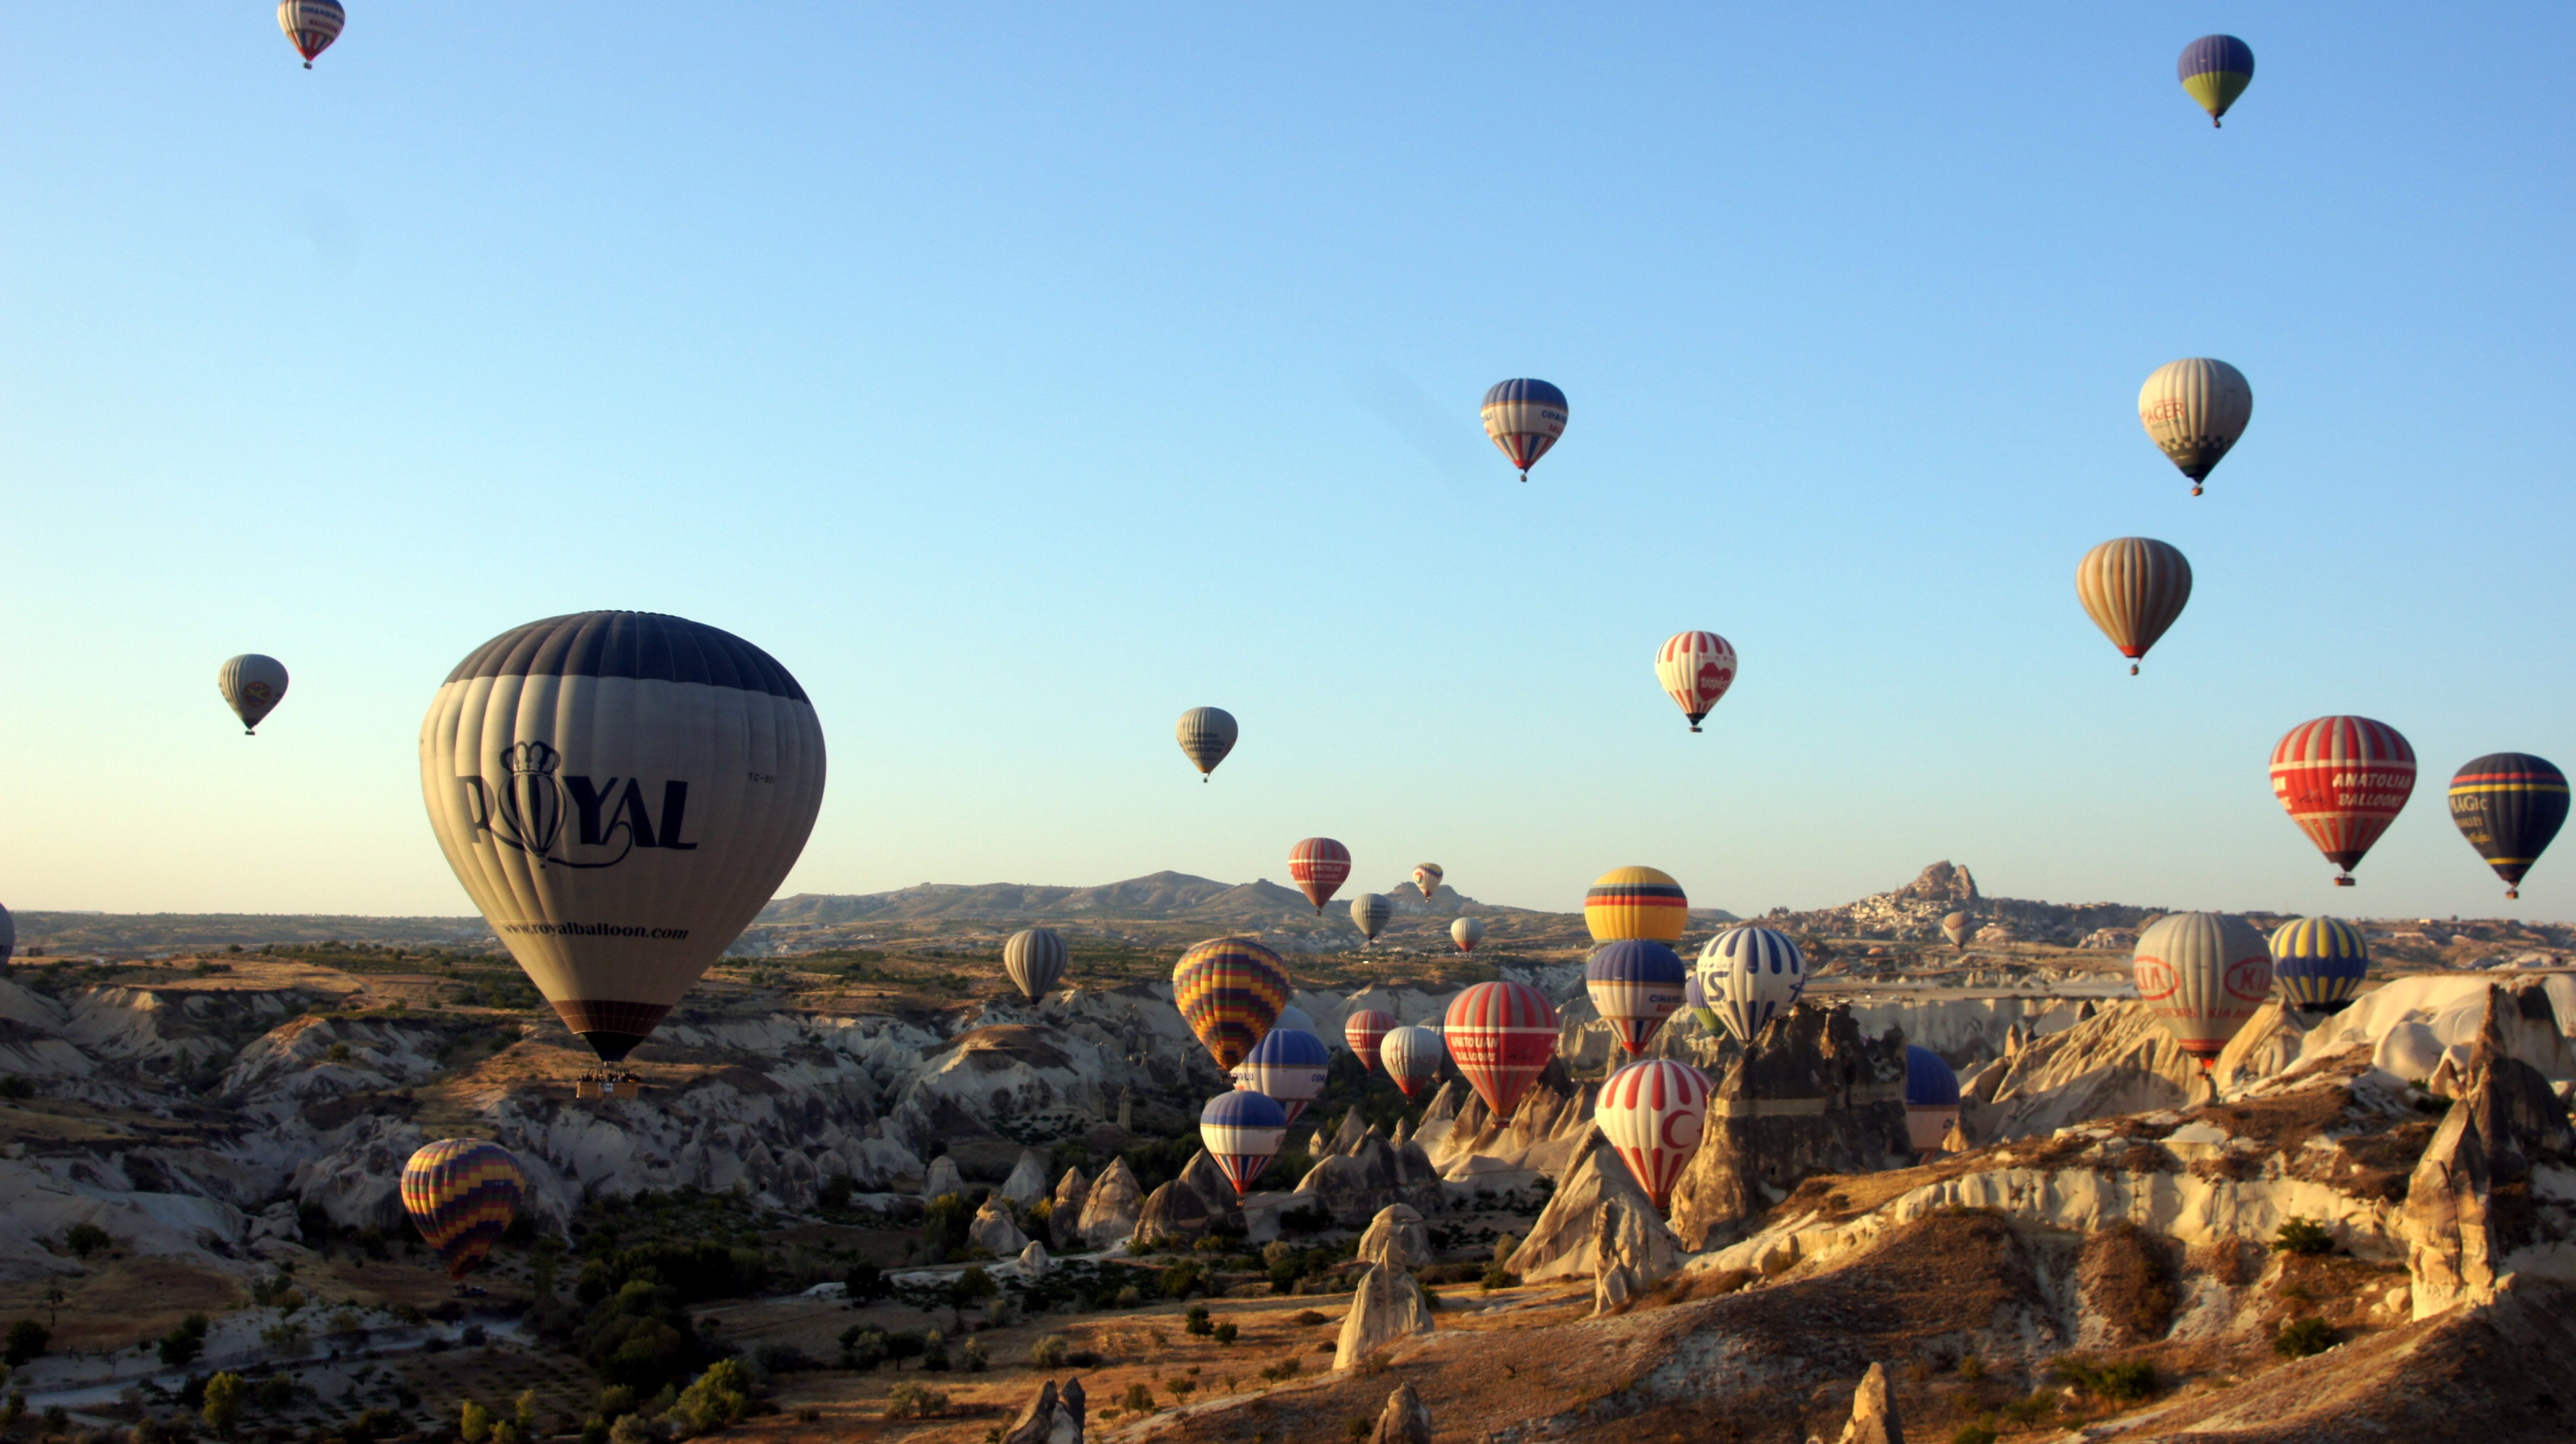 General 3568x2000 hot air balloons Turkey landscape Cappadocia rock formation